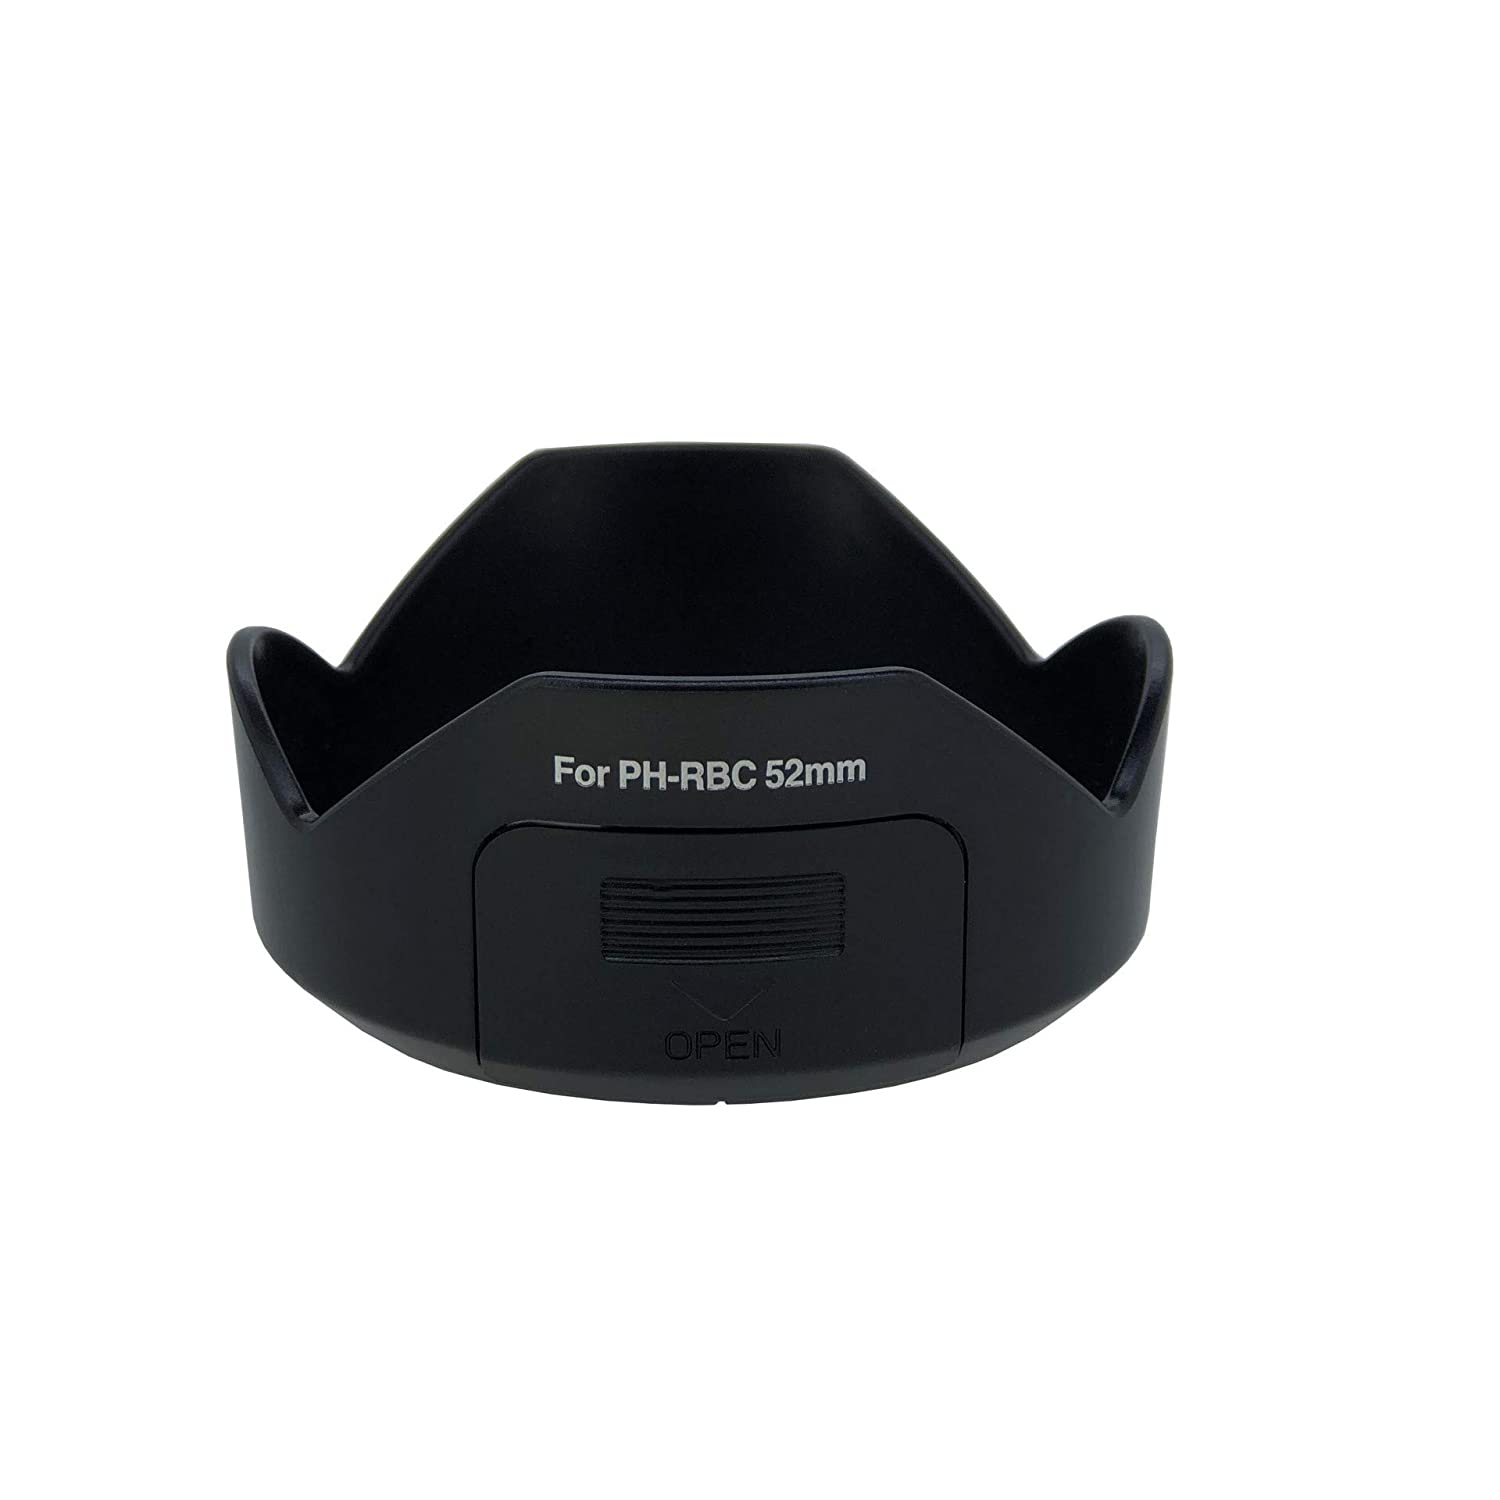 RONSHIN Camera Accessories,PH-RBA 52mm Lens Hood for Pentax SMCP-DA 18-55mm f//3.5-5.6 AL DT